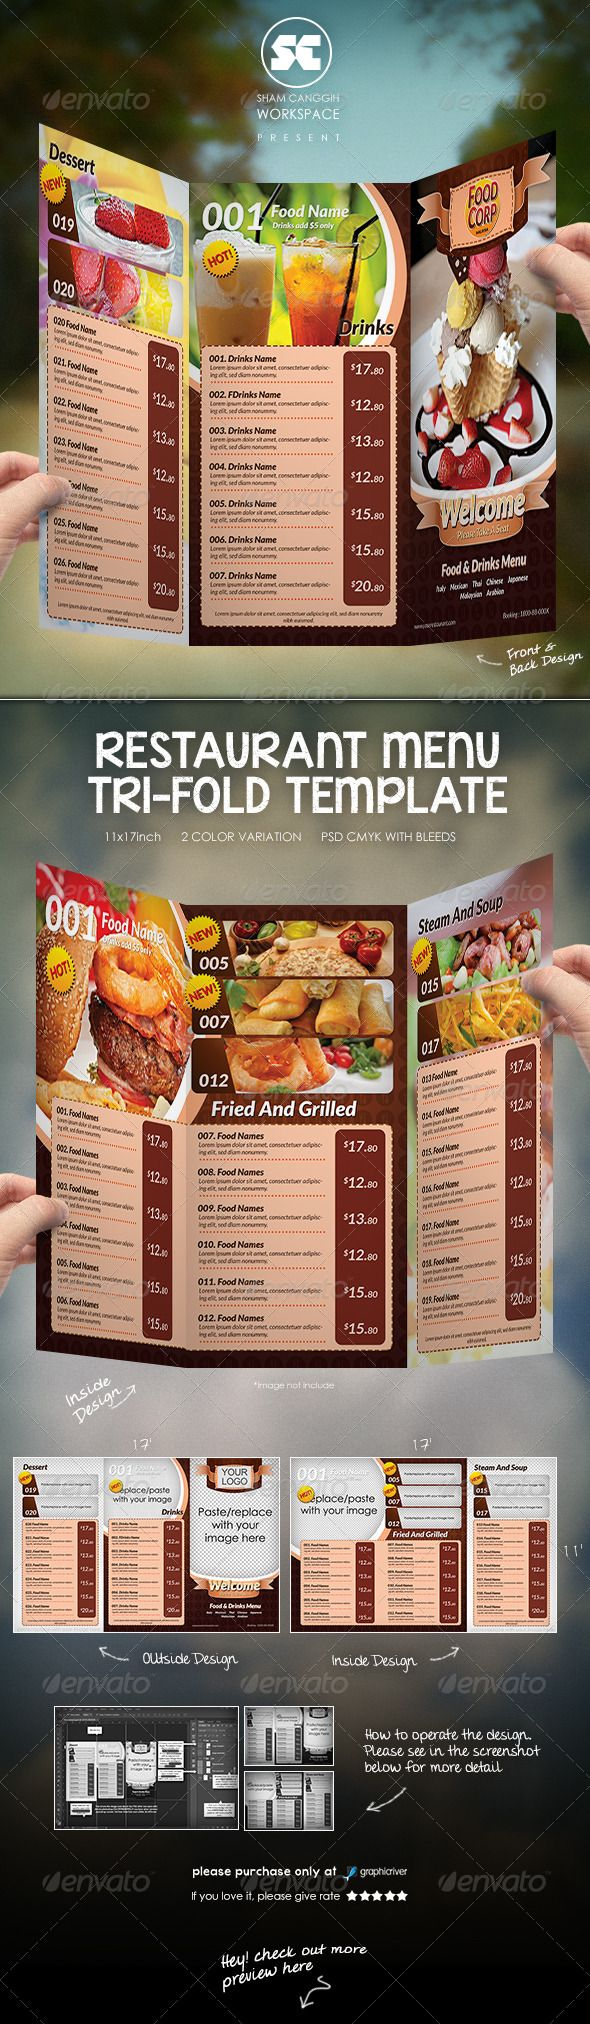 "Tri-Fold Restaurant Menu Template #GraphicRiver Menu design suitable for restaurants, fast food, take out, pizza places etc. Description : Tri-Fold Style 11×17"" + 0.25 bleeds 2x PSD (front/back design & inside design) 300dpi cmyk Font used : Lato available here .fontsquirrel /fonts/lato Other Information : This is Design Template for Restaurant Menu with Tri-fold Style. It is a Print template not a Tri-fold Mock-Up template that you can put your design. Please see In the SCREENSHOT for more…"